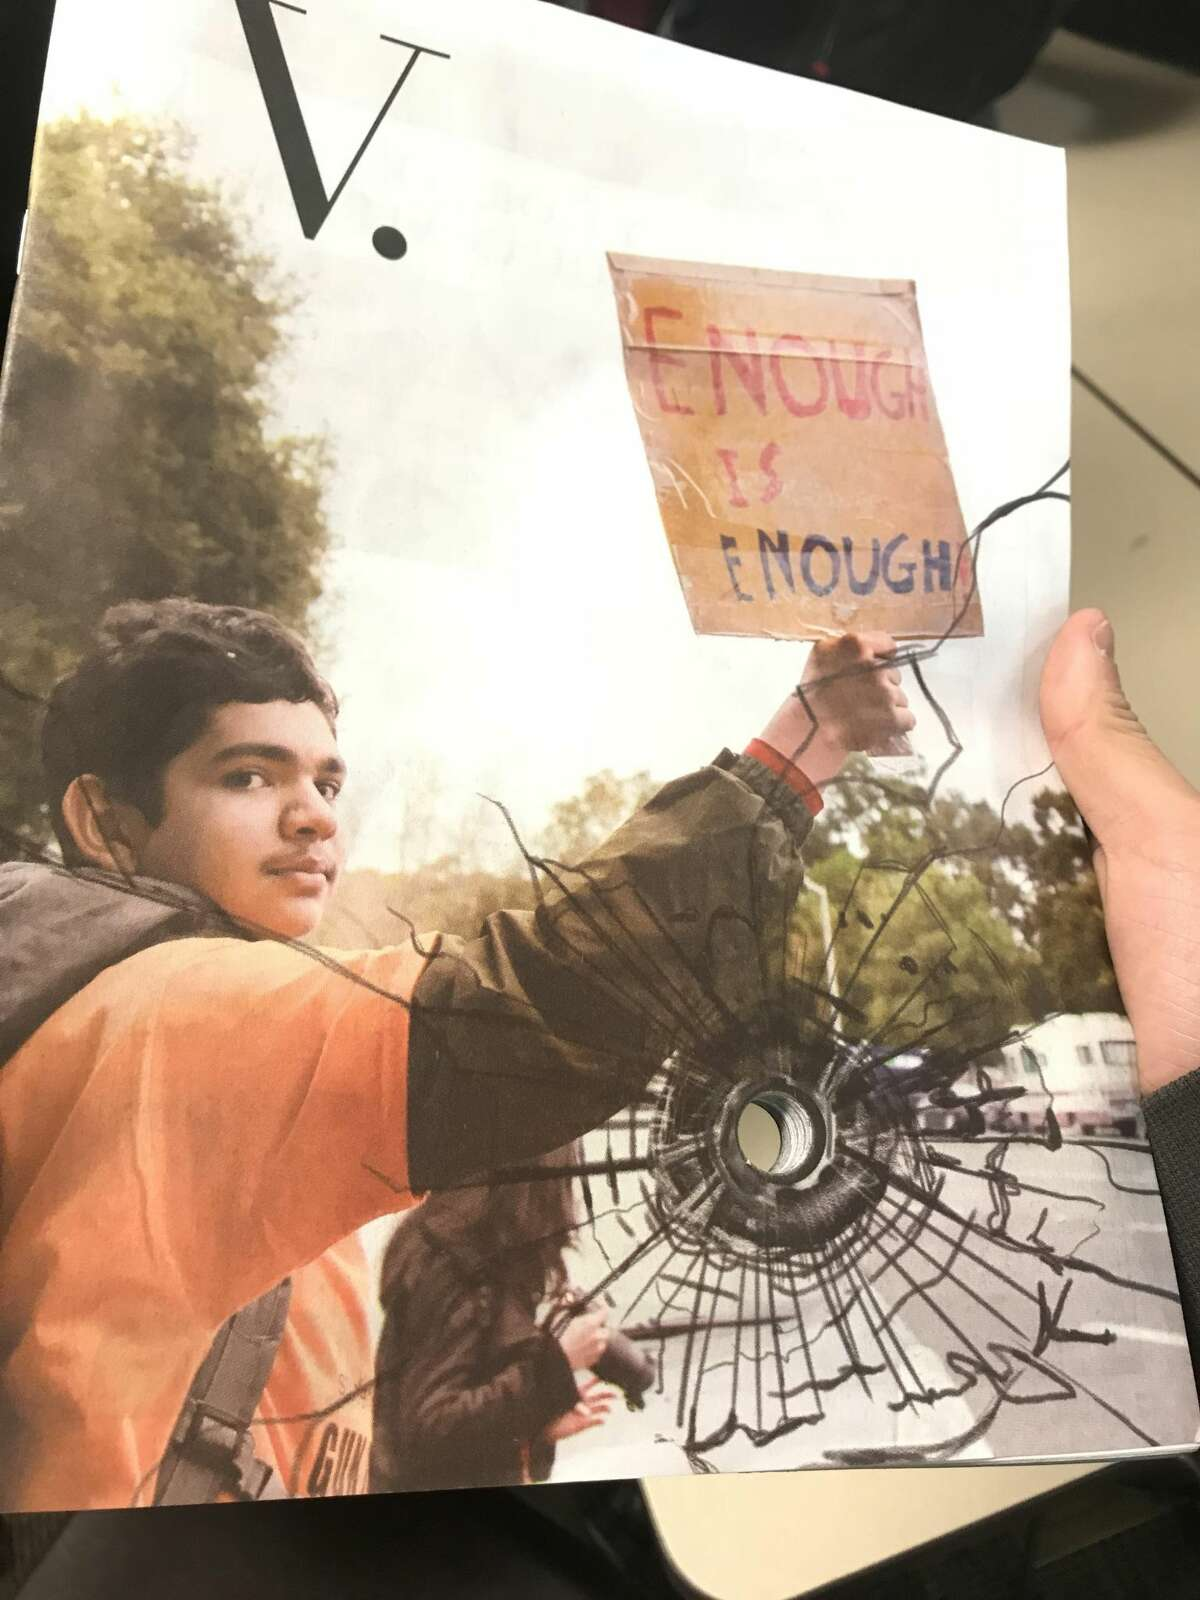 Palo Alto High School's Verde Magazine has captured the internet's attention with the design choice to feature a bullet hole through it in response to the Florida school shooting Feb. 14.